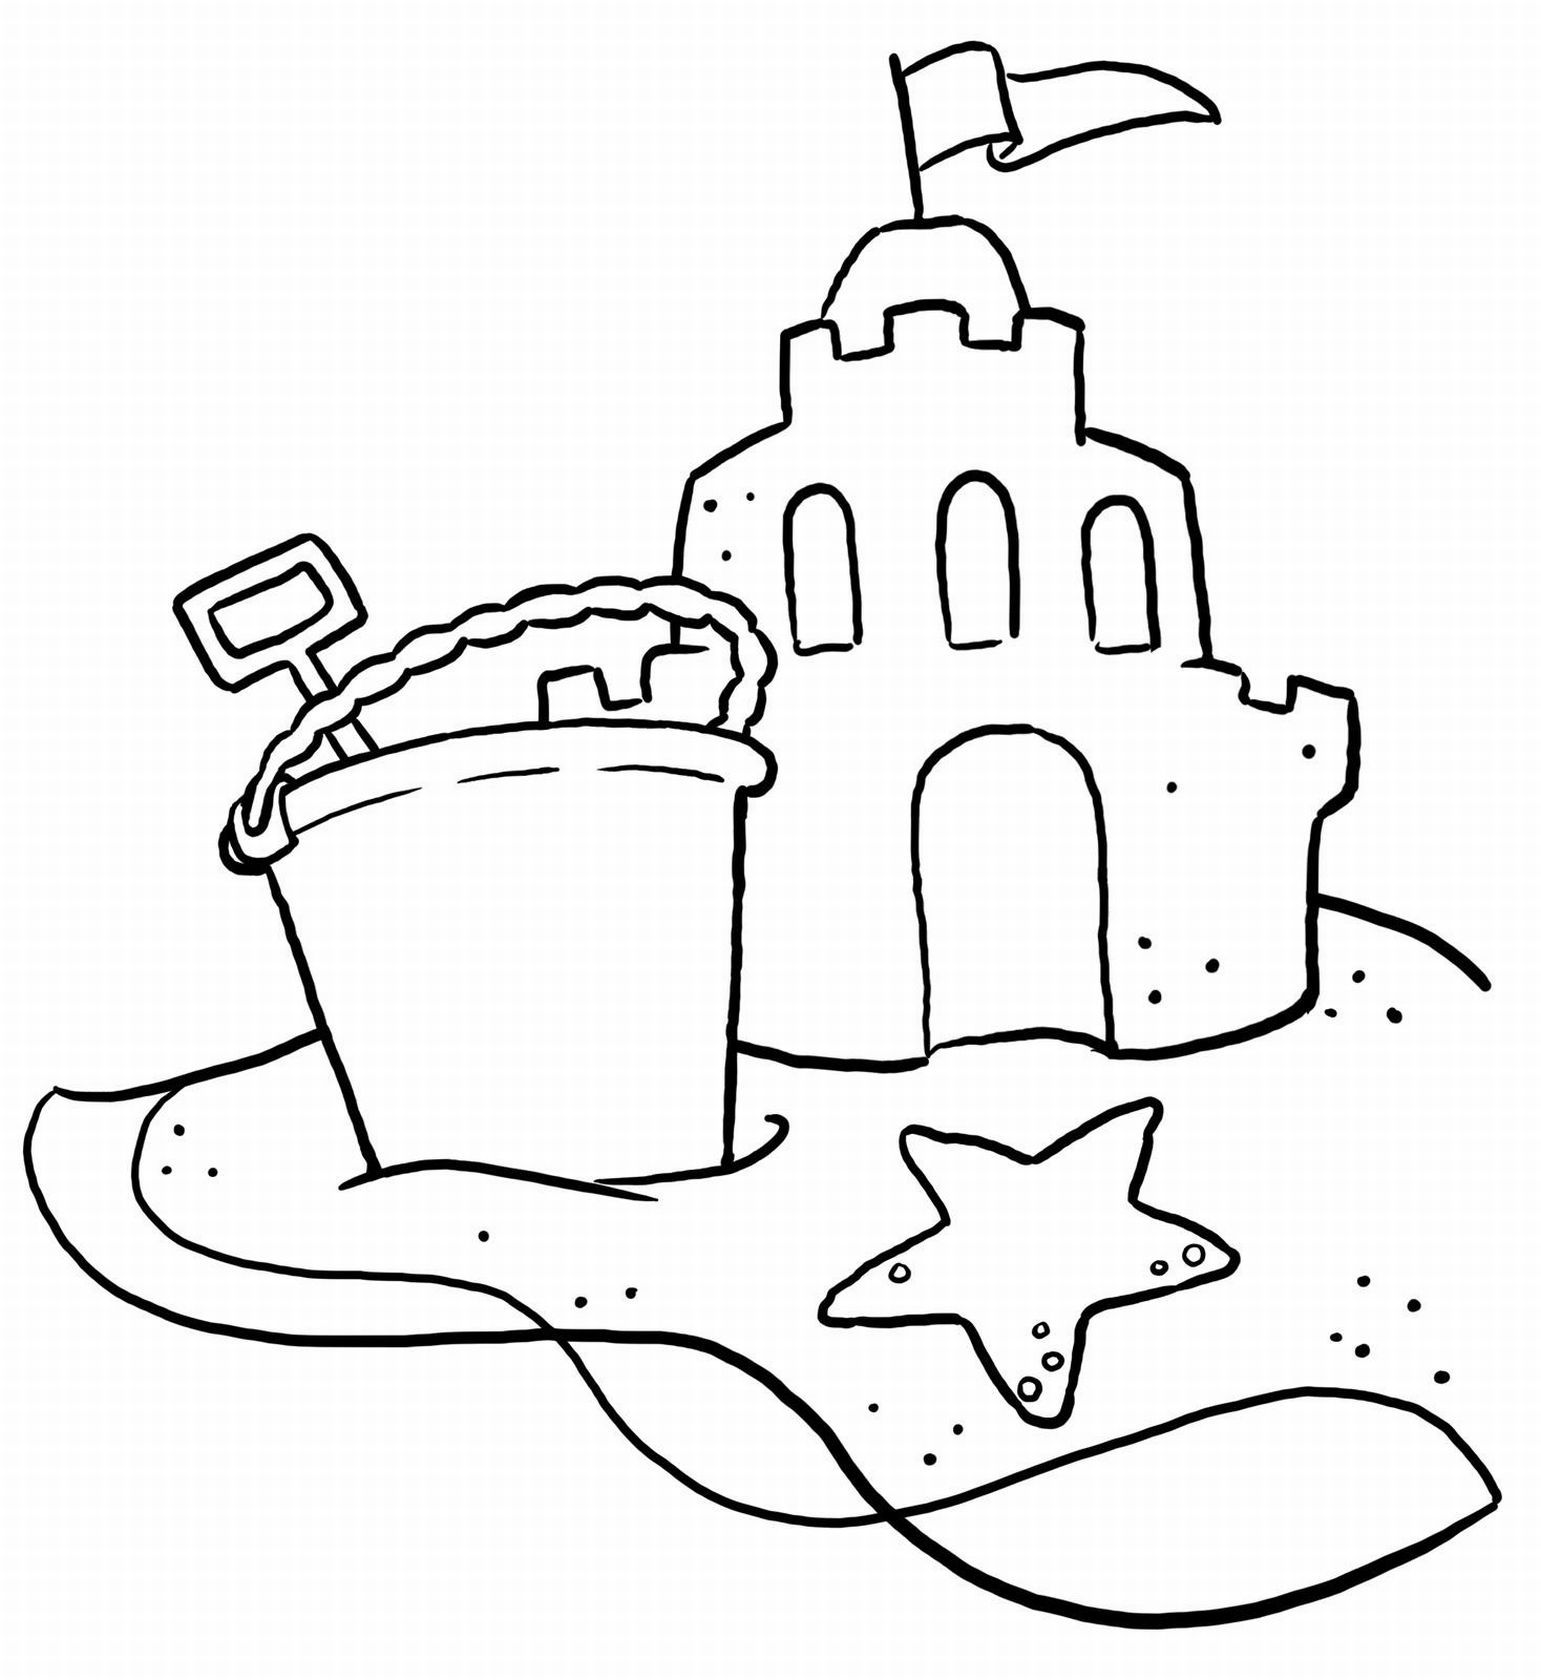 coloring pages beach scenes beach coloring pages beach scenes activities scenes coloring beach pages